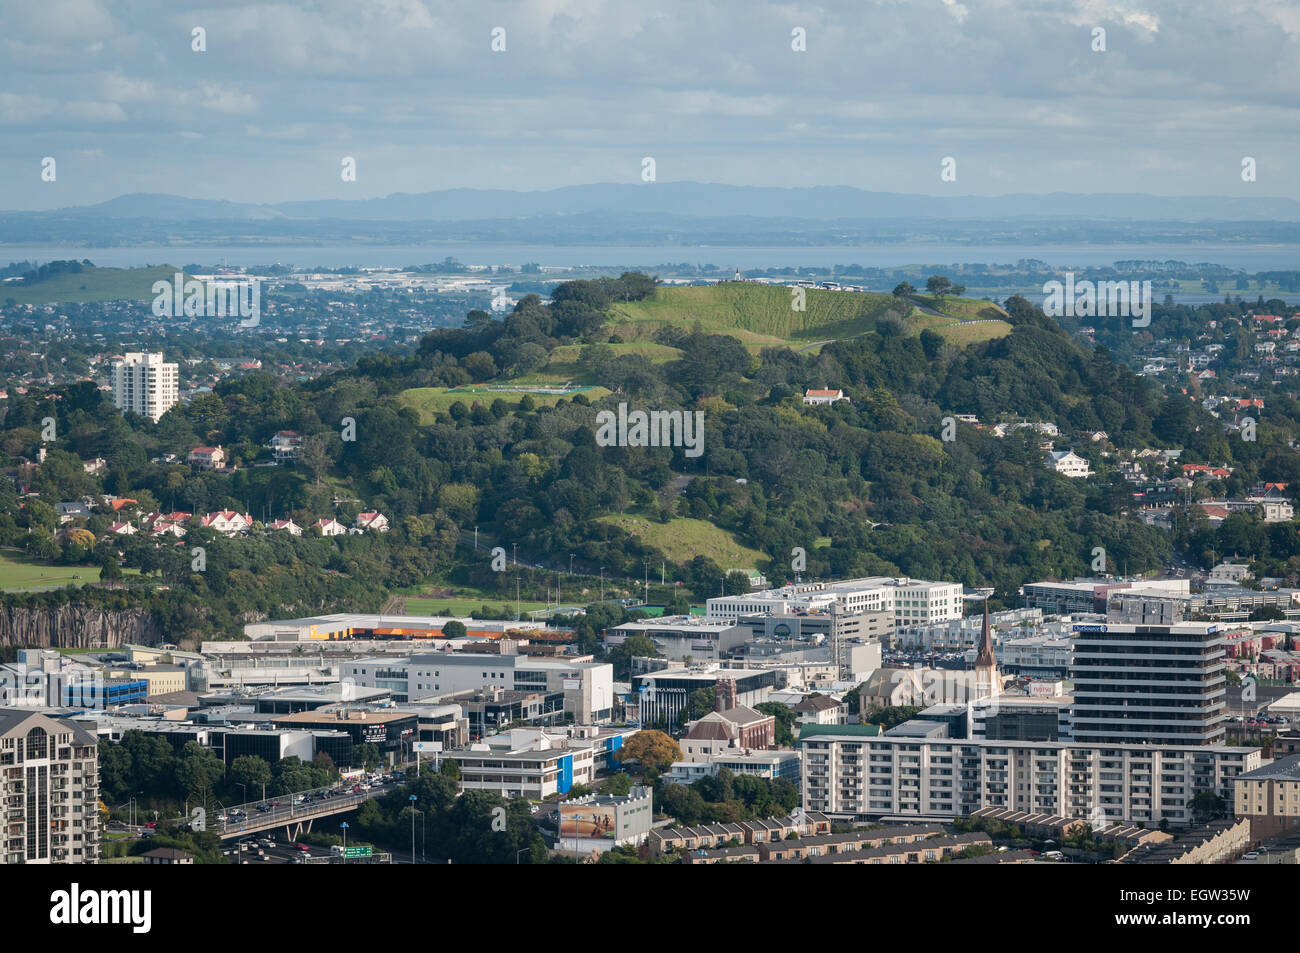 The view from the Skytower, Auckland, North Island, New Zealand. - Stock Image